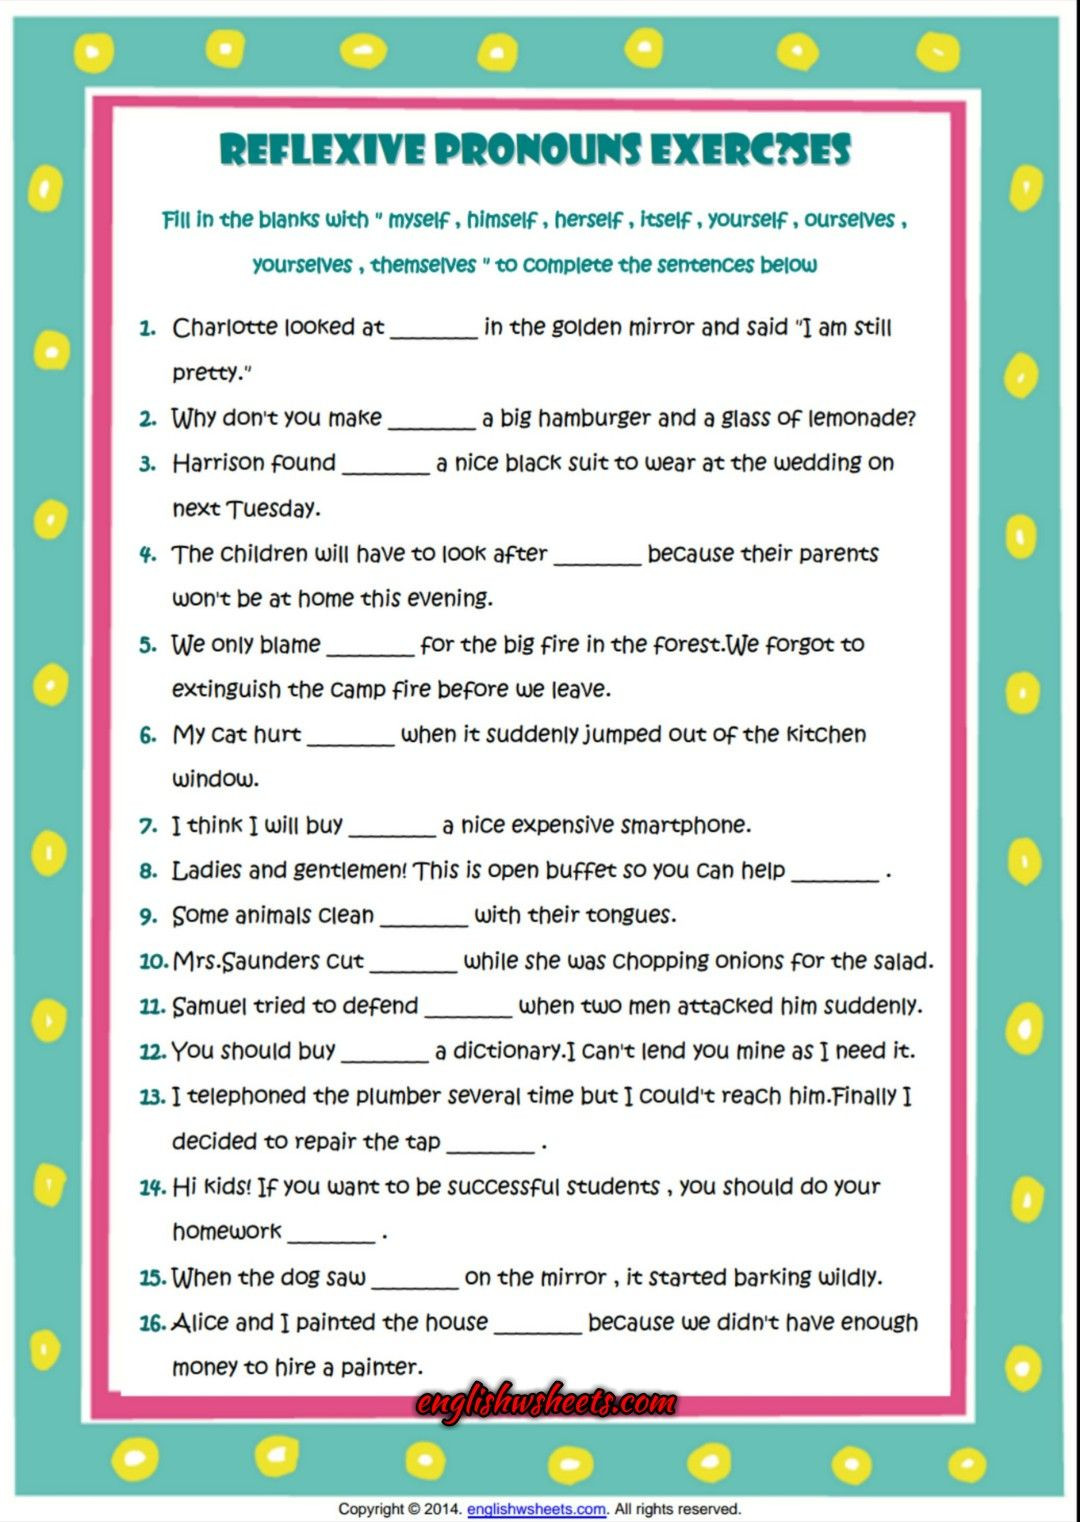 Grammar Worksheets Middle School Pdf Reflexive Pronouns Esl Grammar Exercise Worksheet